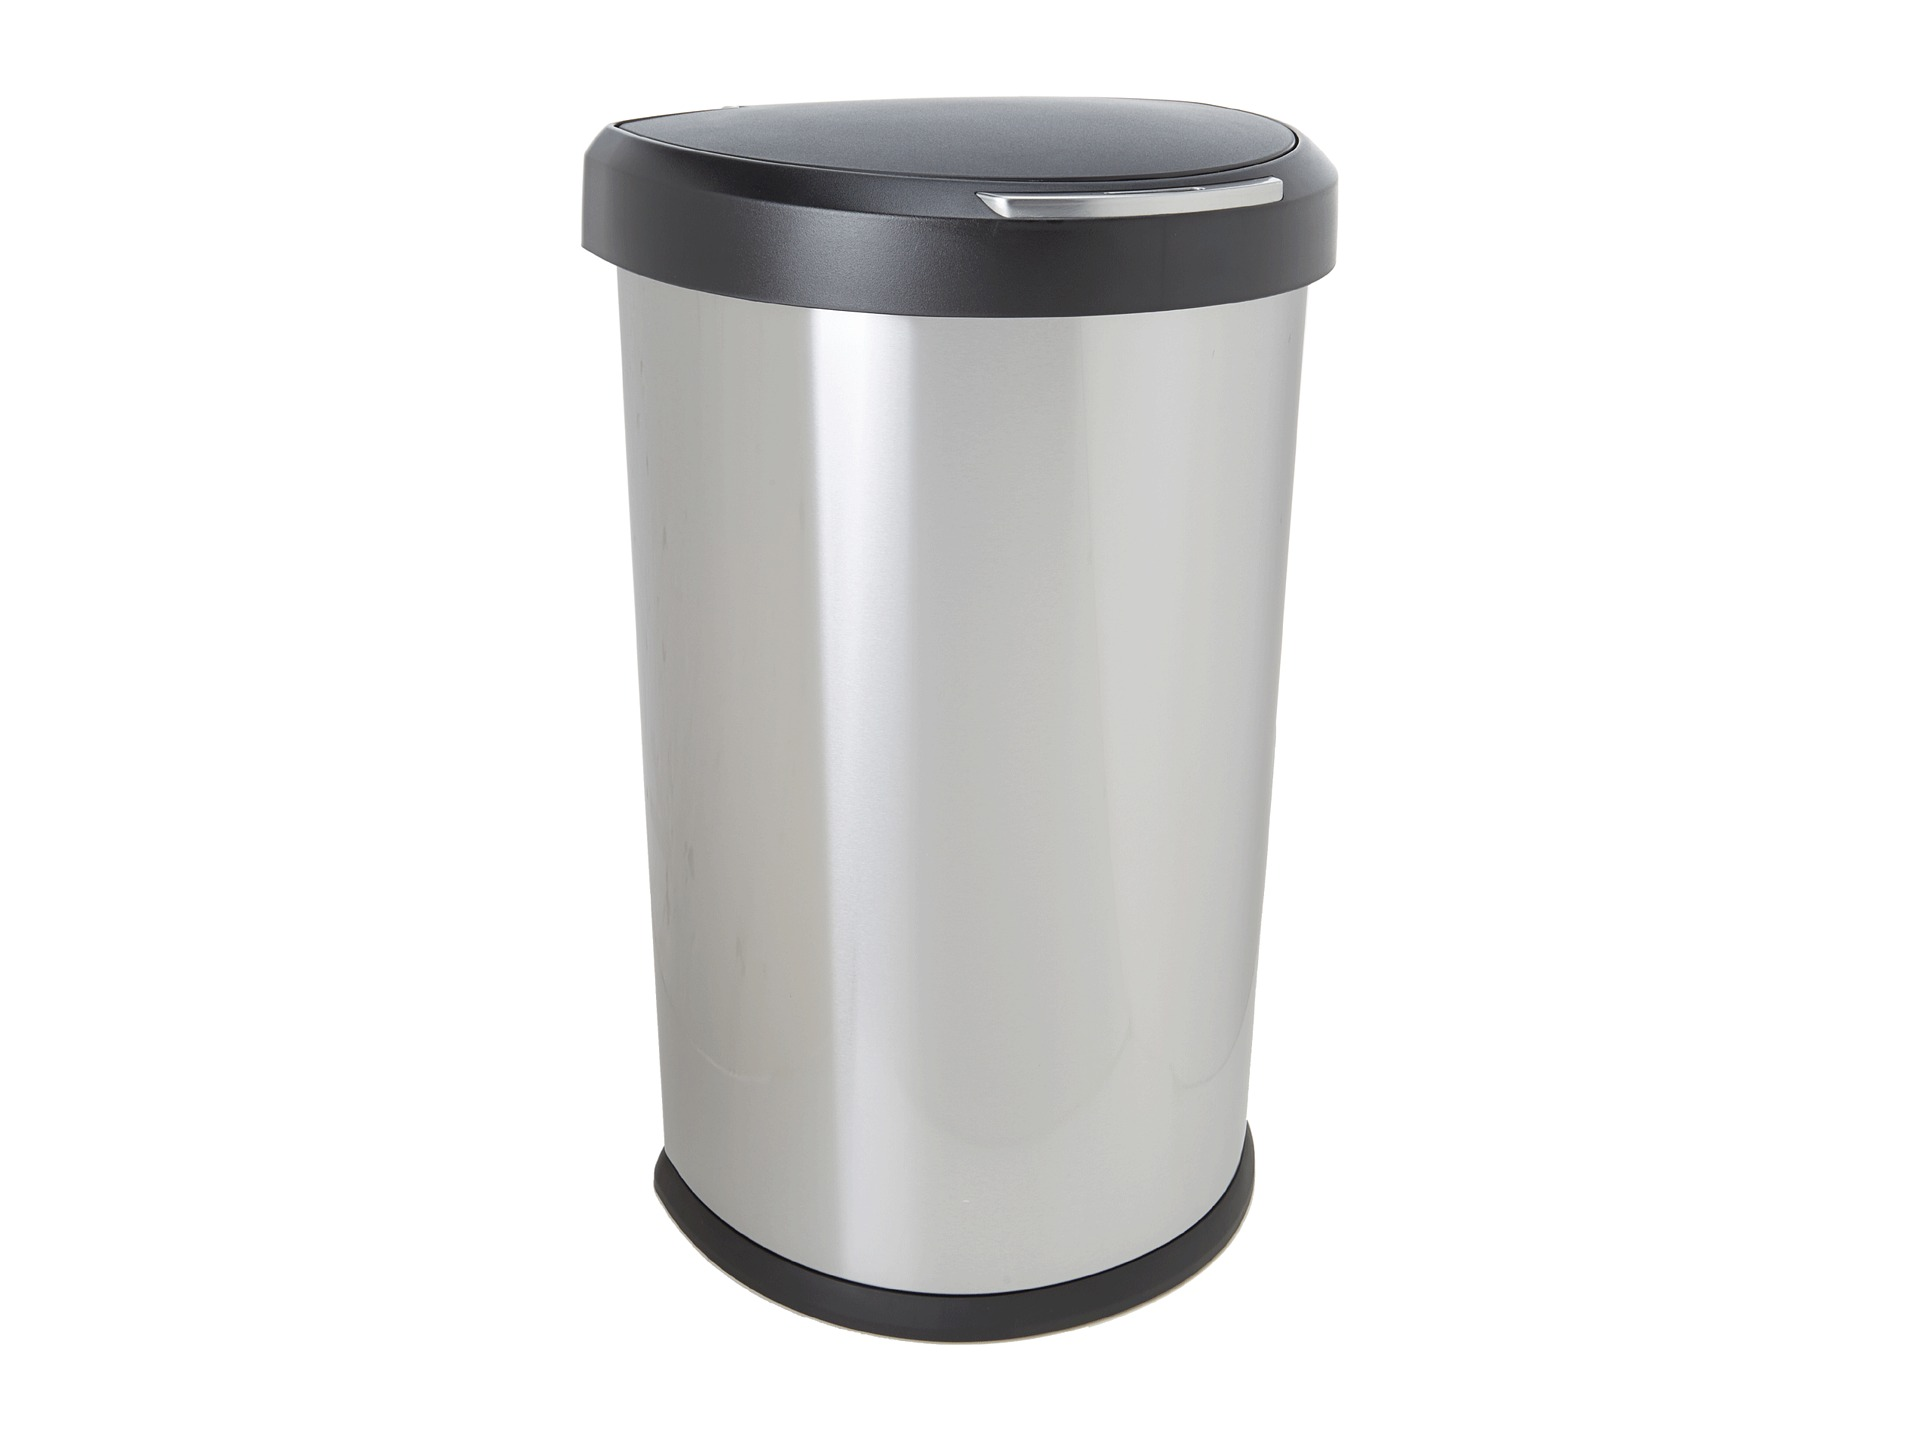 Simplehuman trash can deals on 1001 blocks for Simplehuman trash can